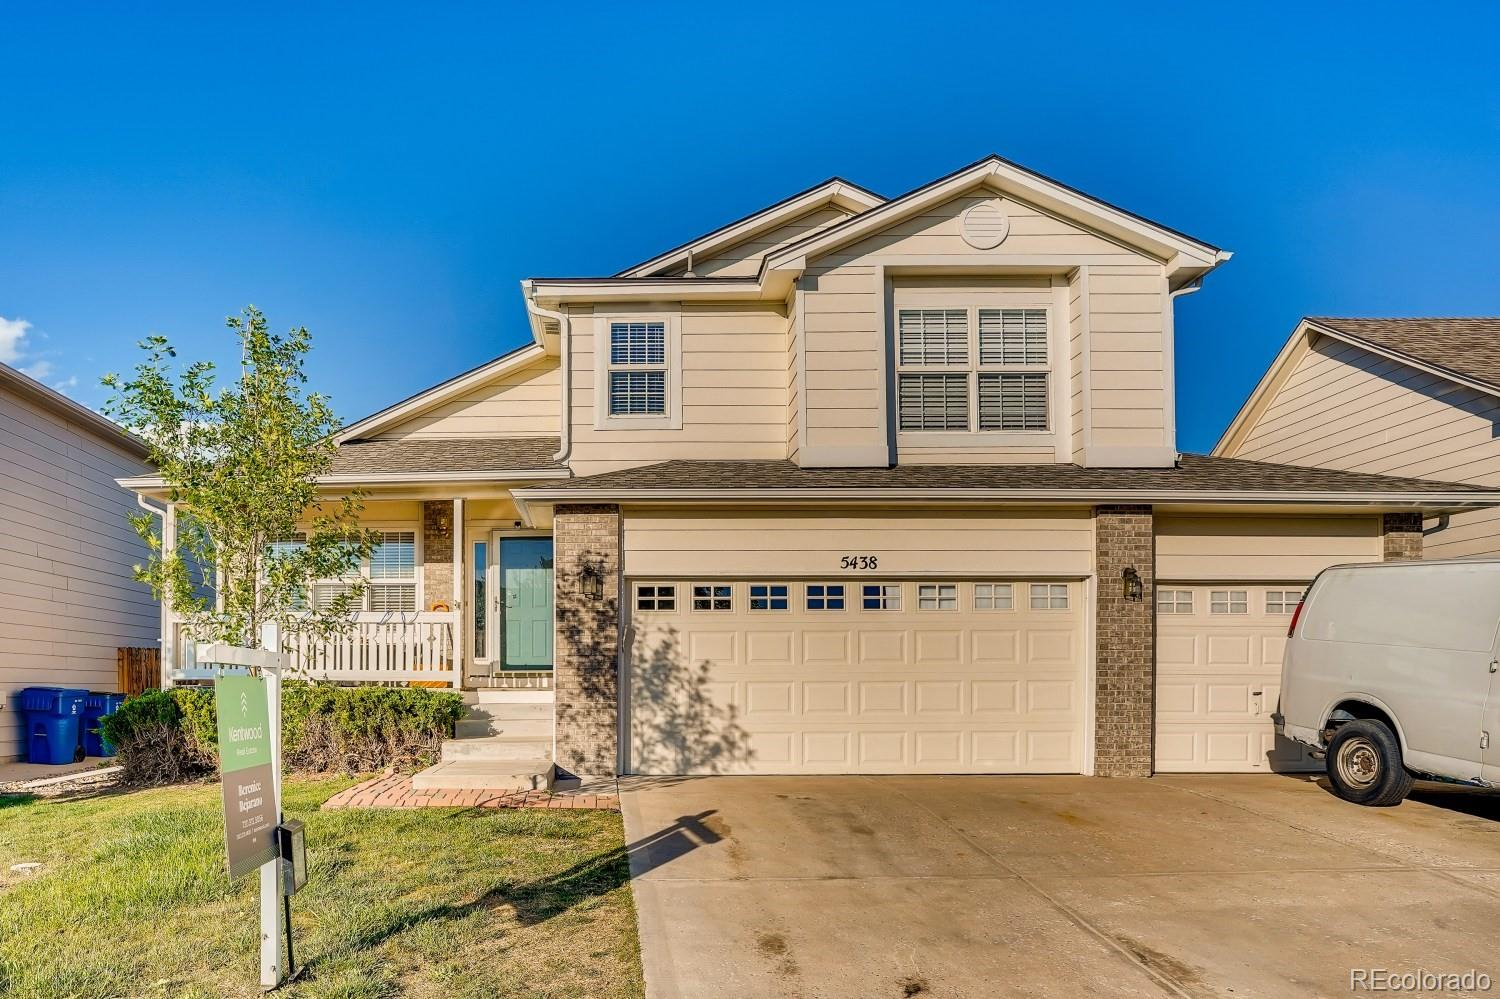 5438 S Versailles Way Property Photo - Aurora, CO real estate listing